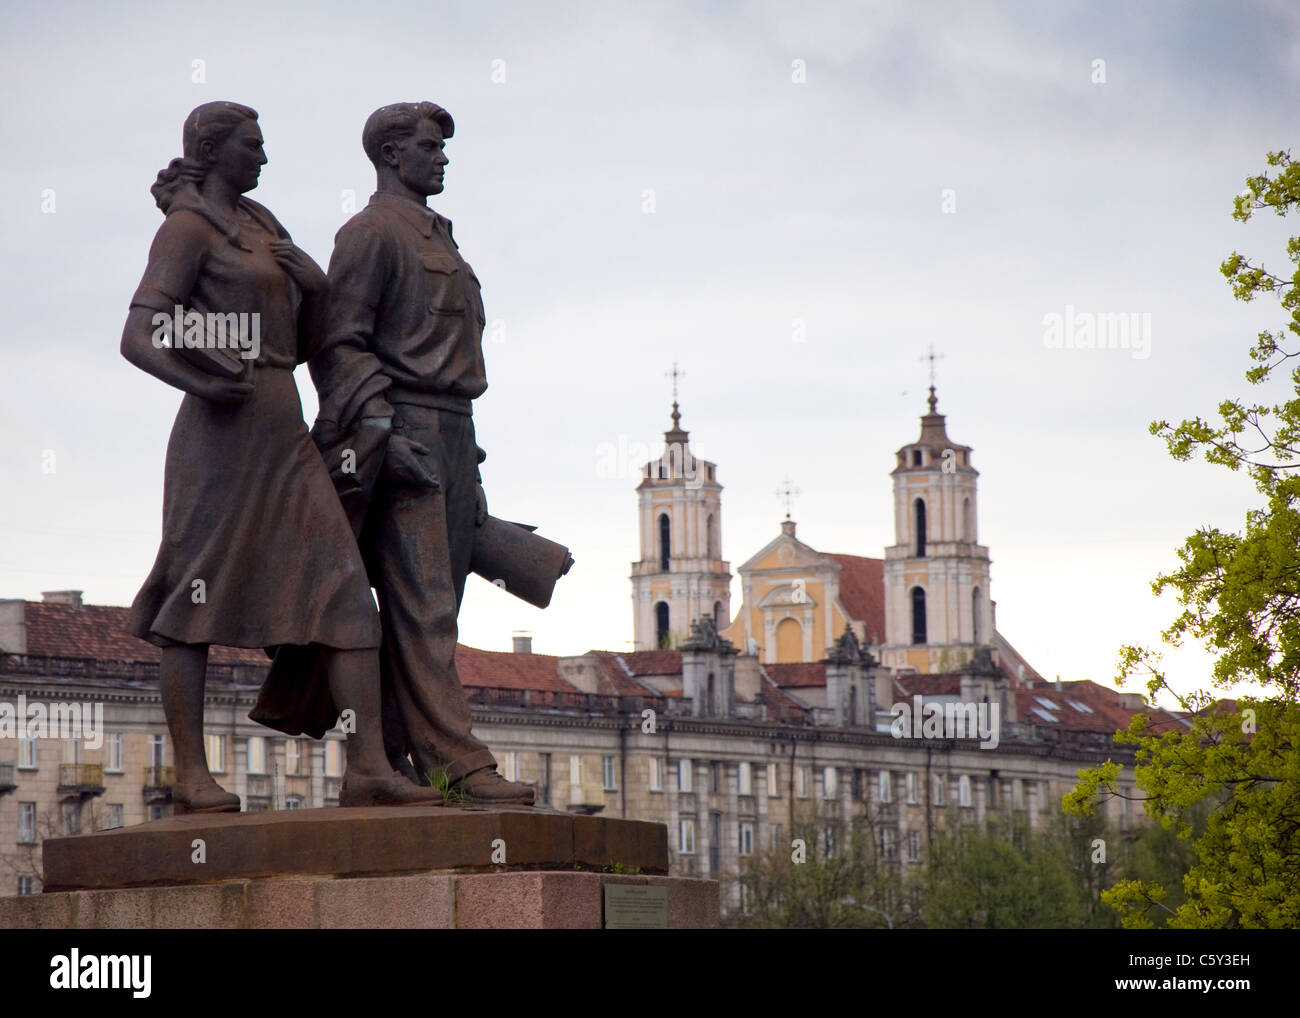 Soviet Statues on the Green Bridge, Vilnius, Lithuania - Stock Image